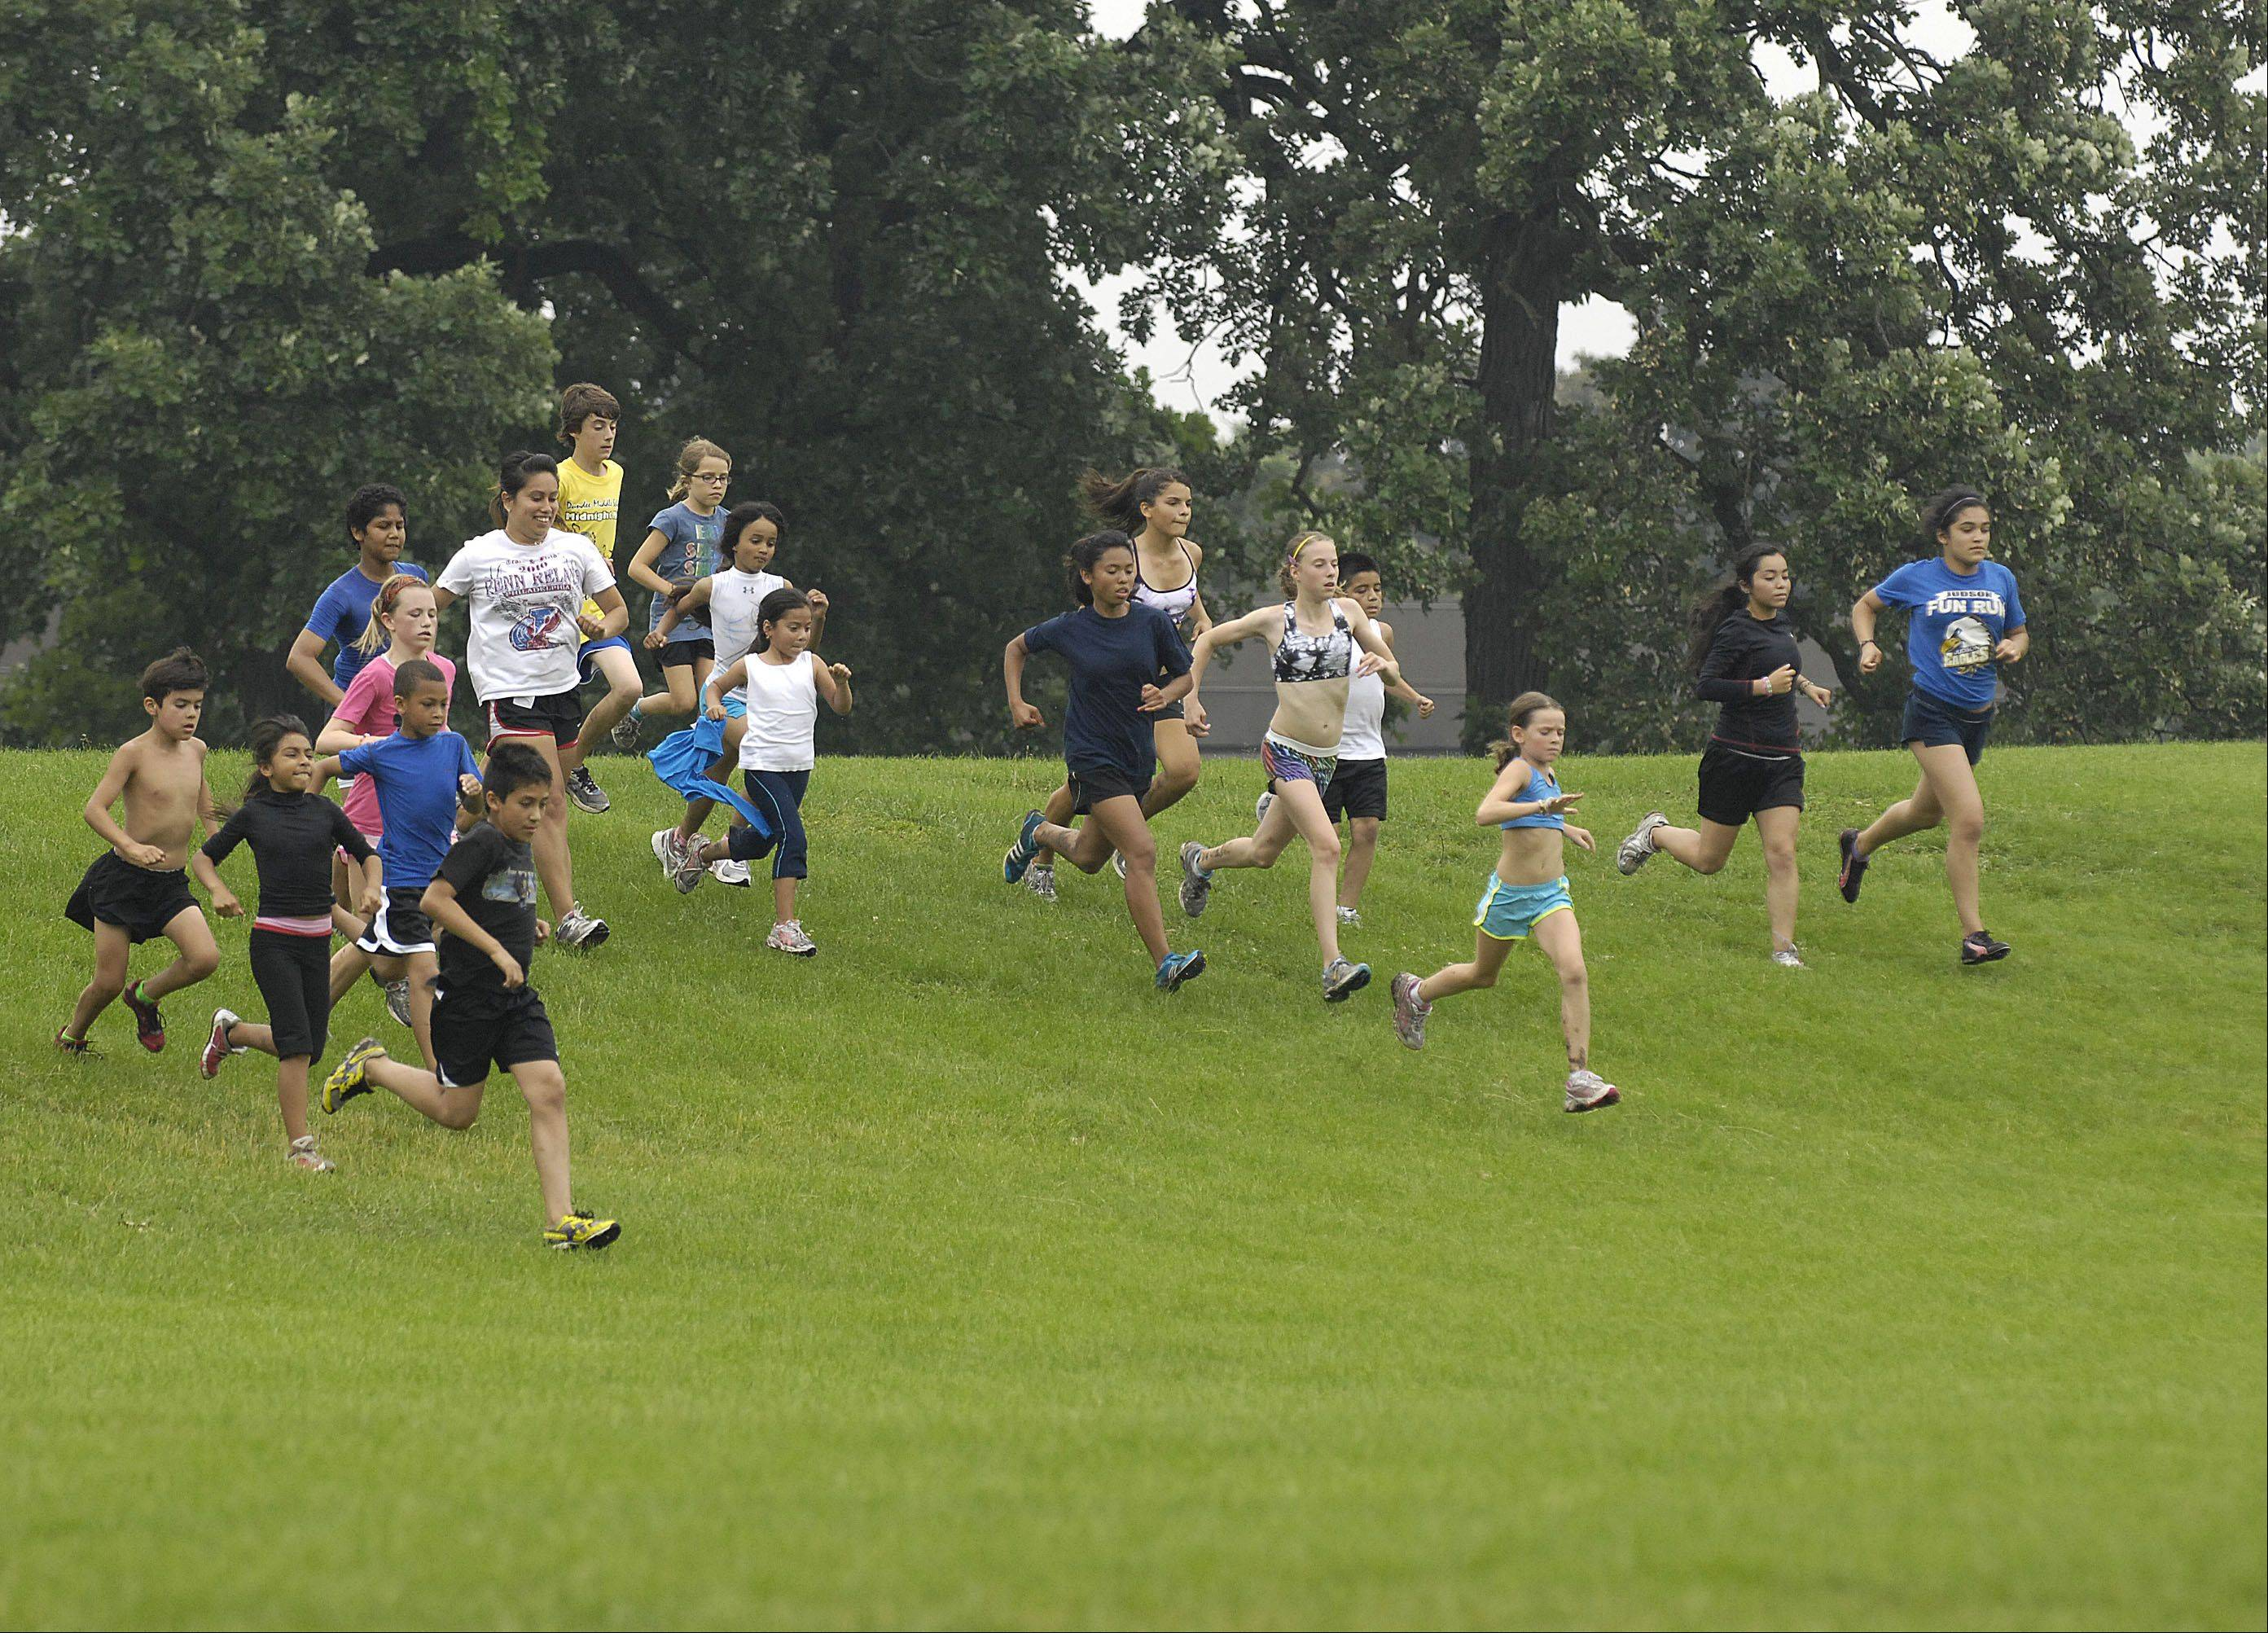 Up to 90 kids run with the Elgin Sharks running club.